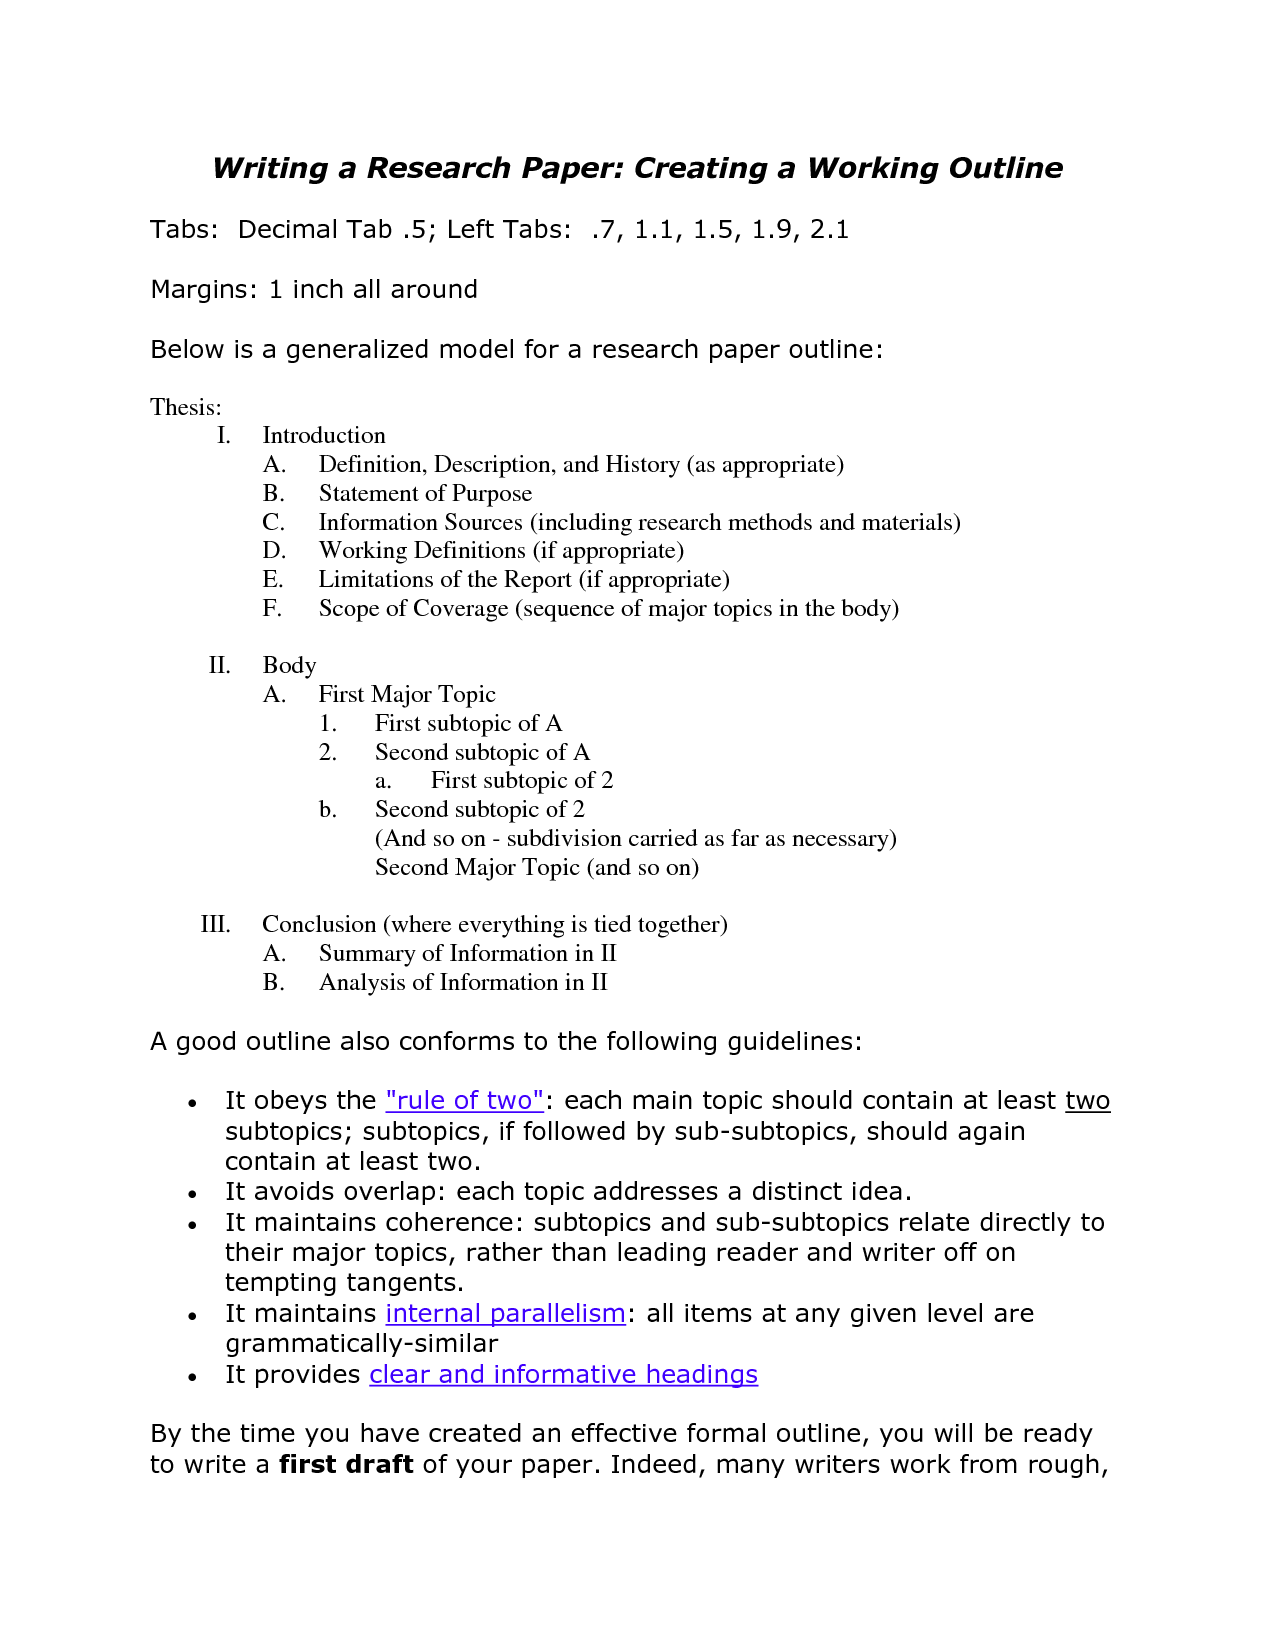 006 Working Outline For Research Paper Example 477670 Top Formal A Your Sample Of Apa Full